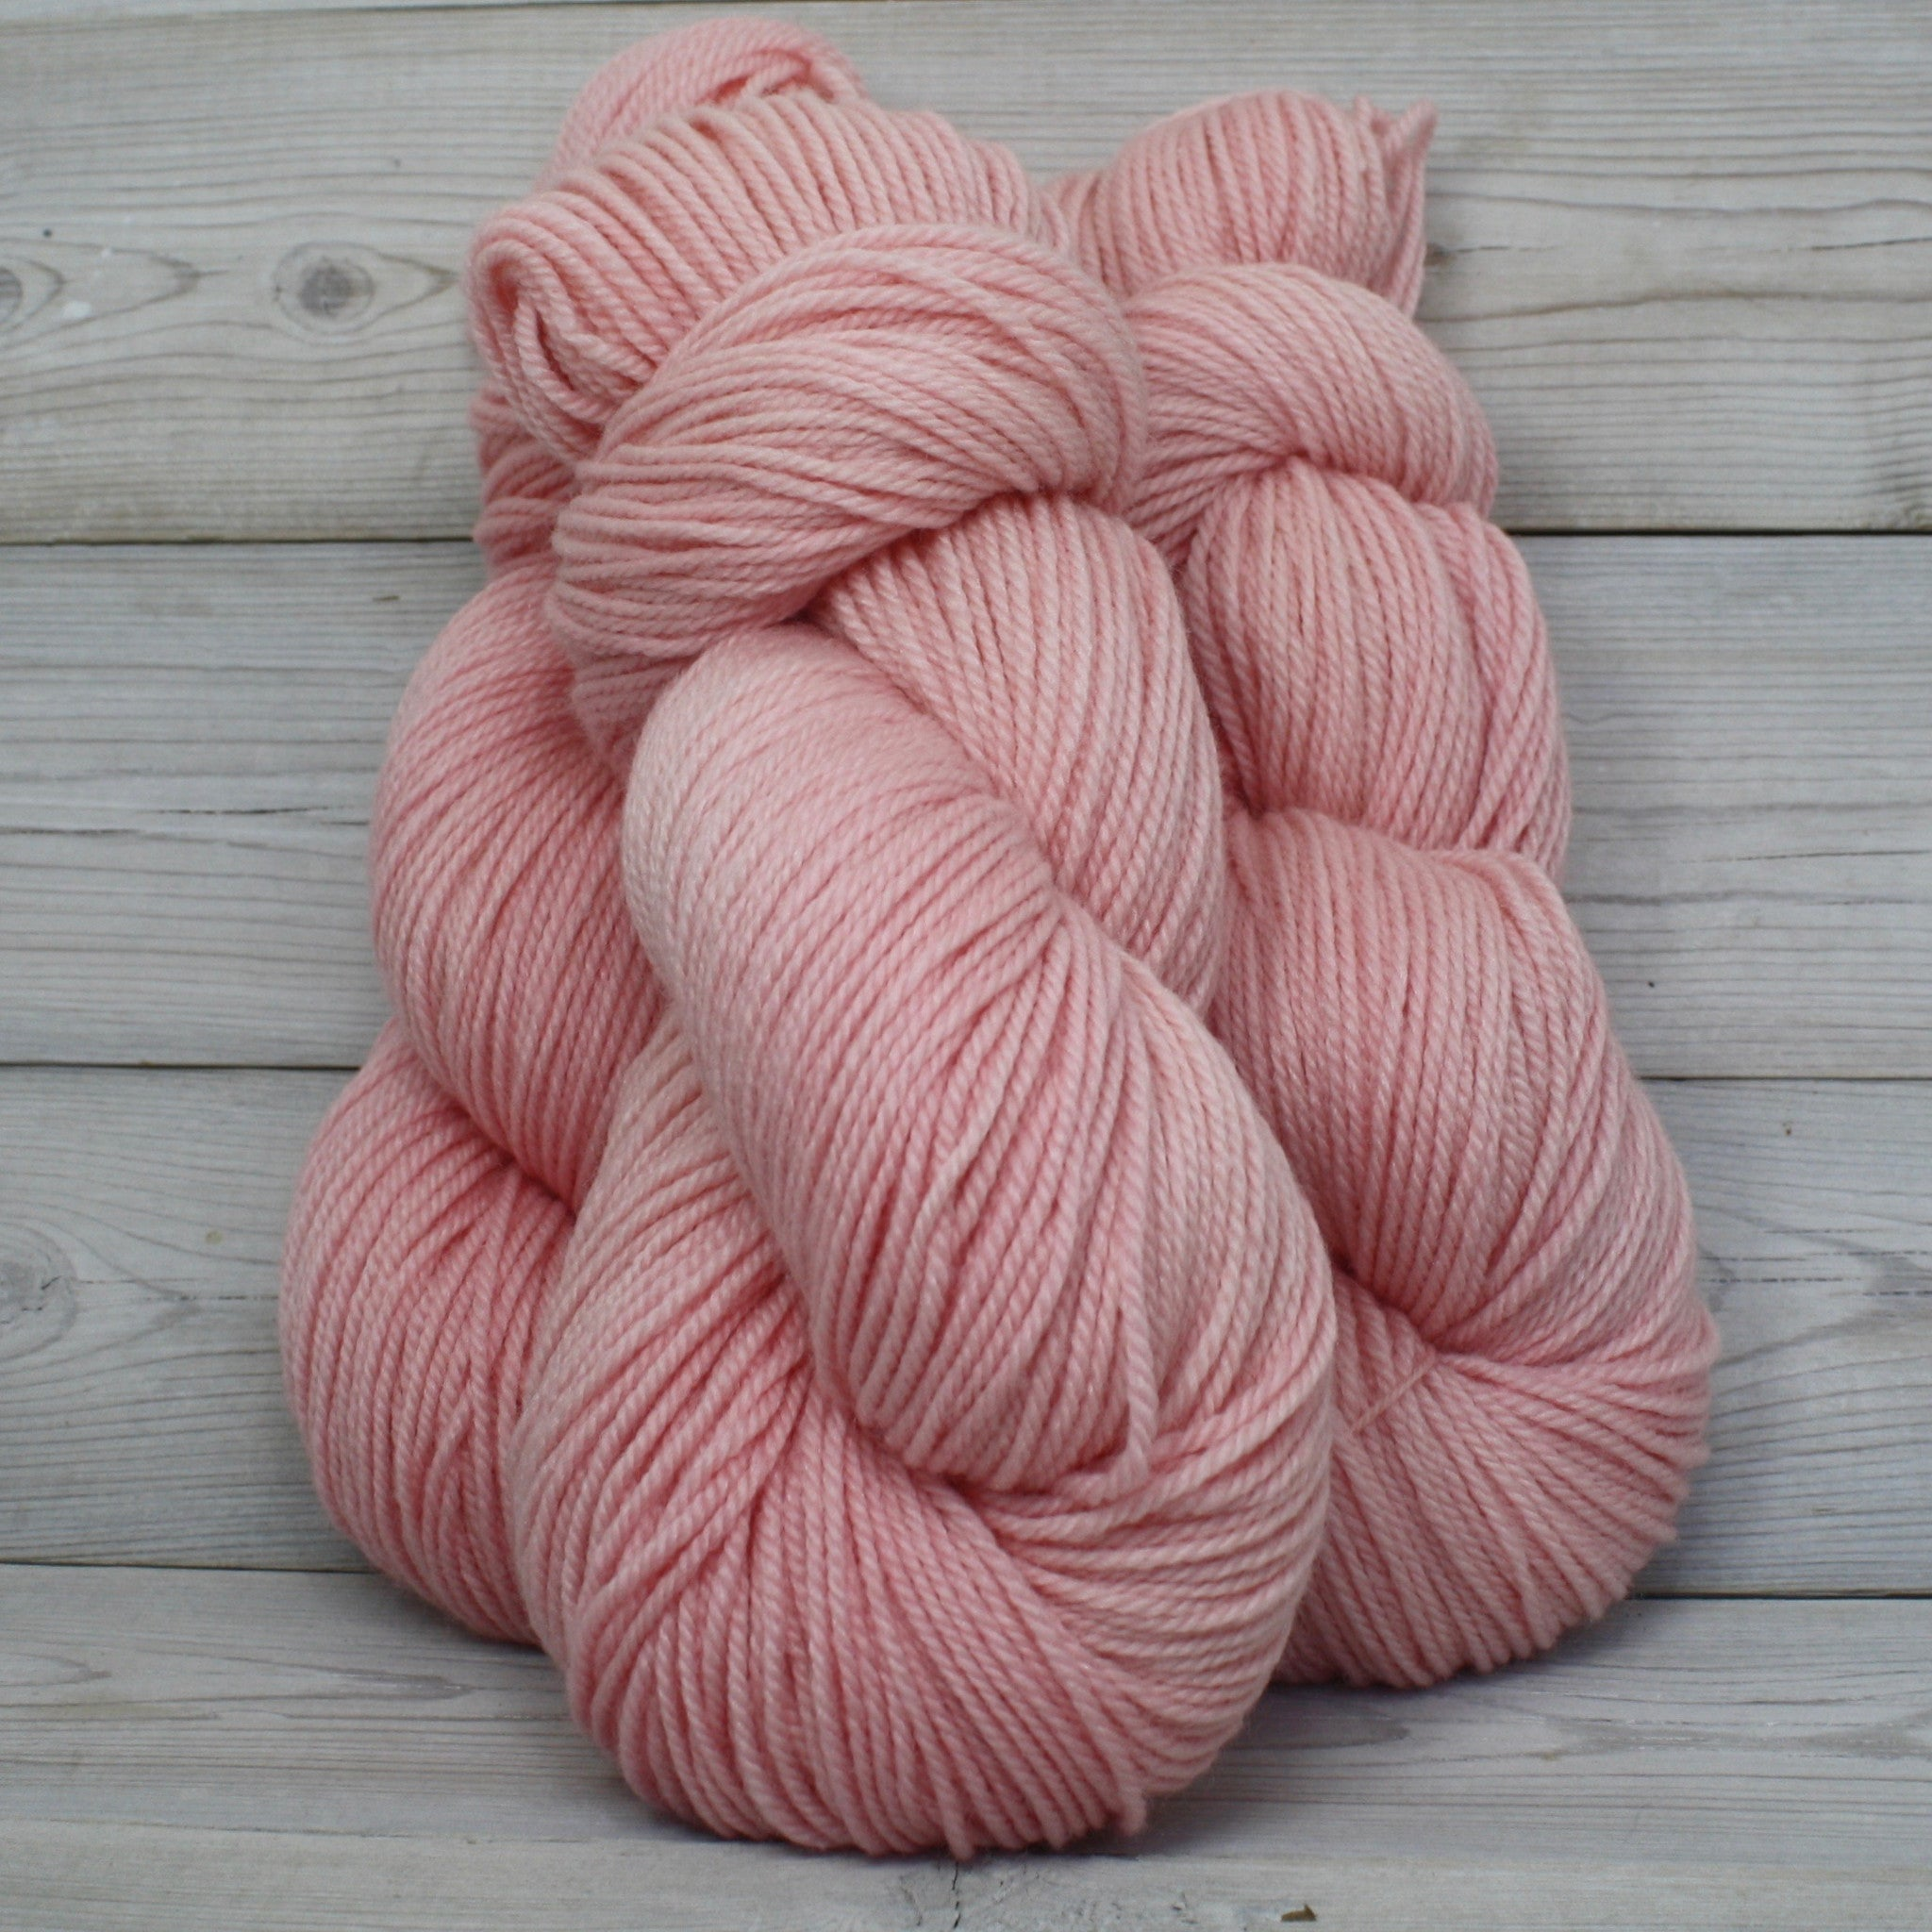 Zeta Yarn | Colorway: Ballet Slipper | Overstock